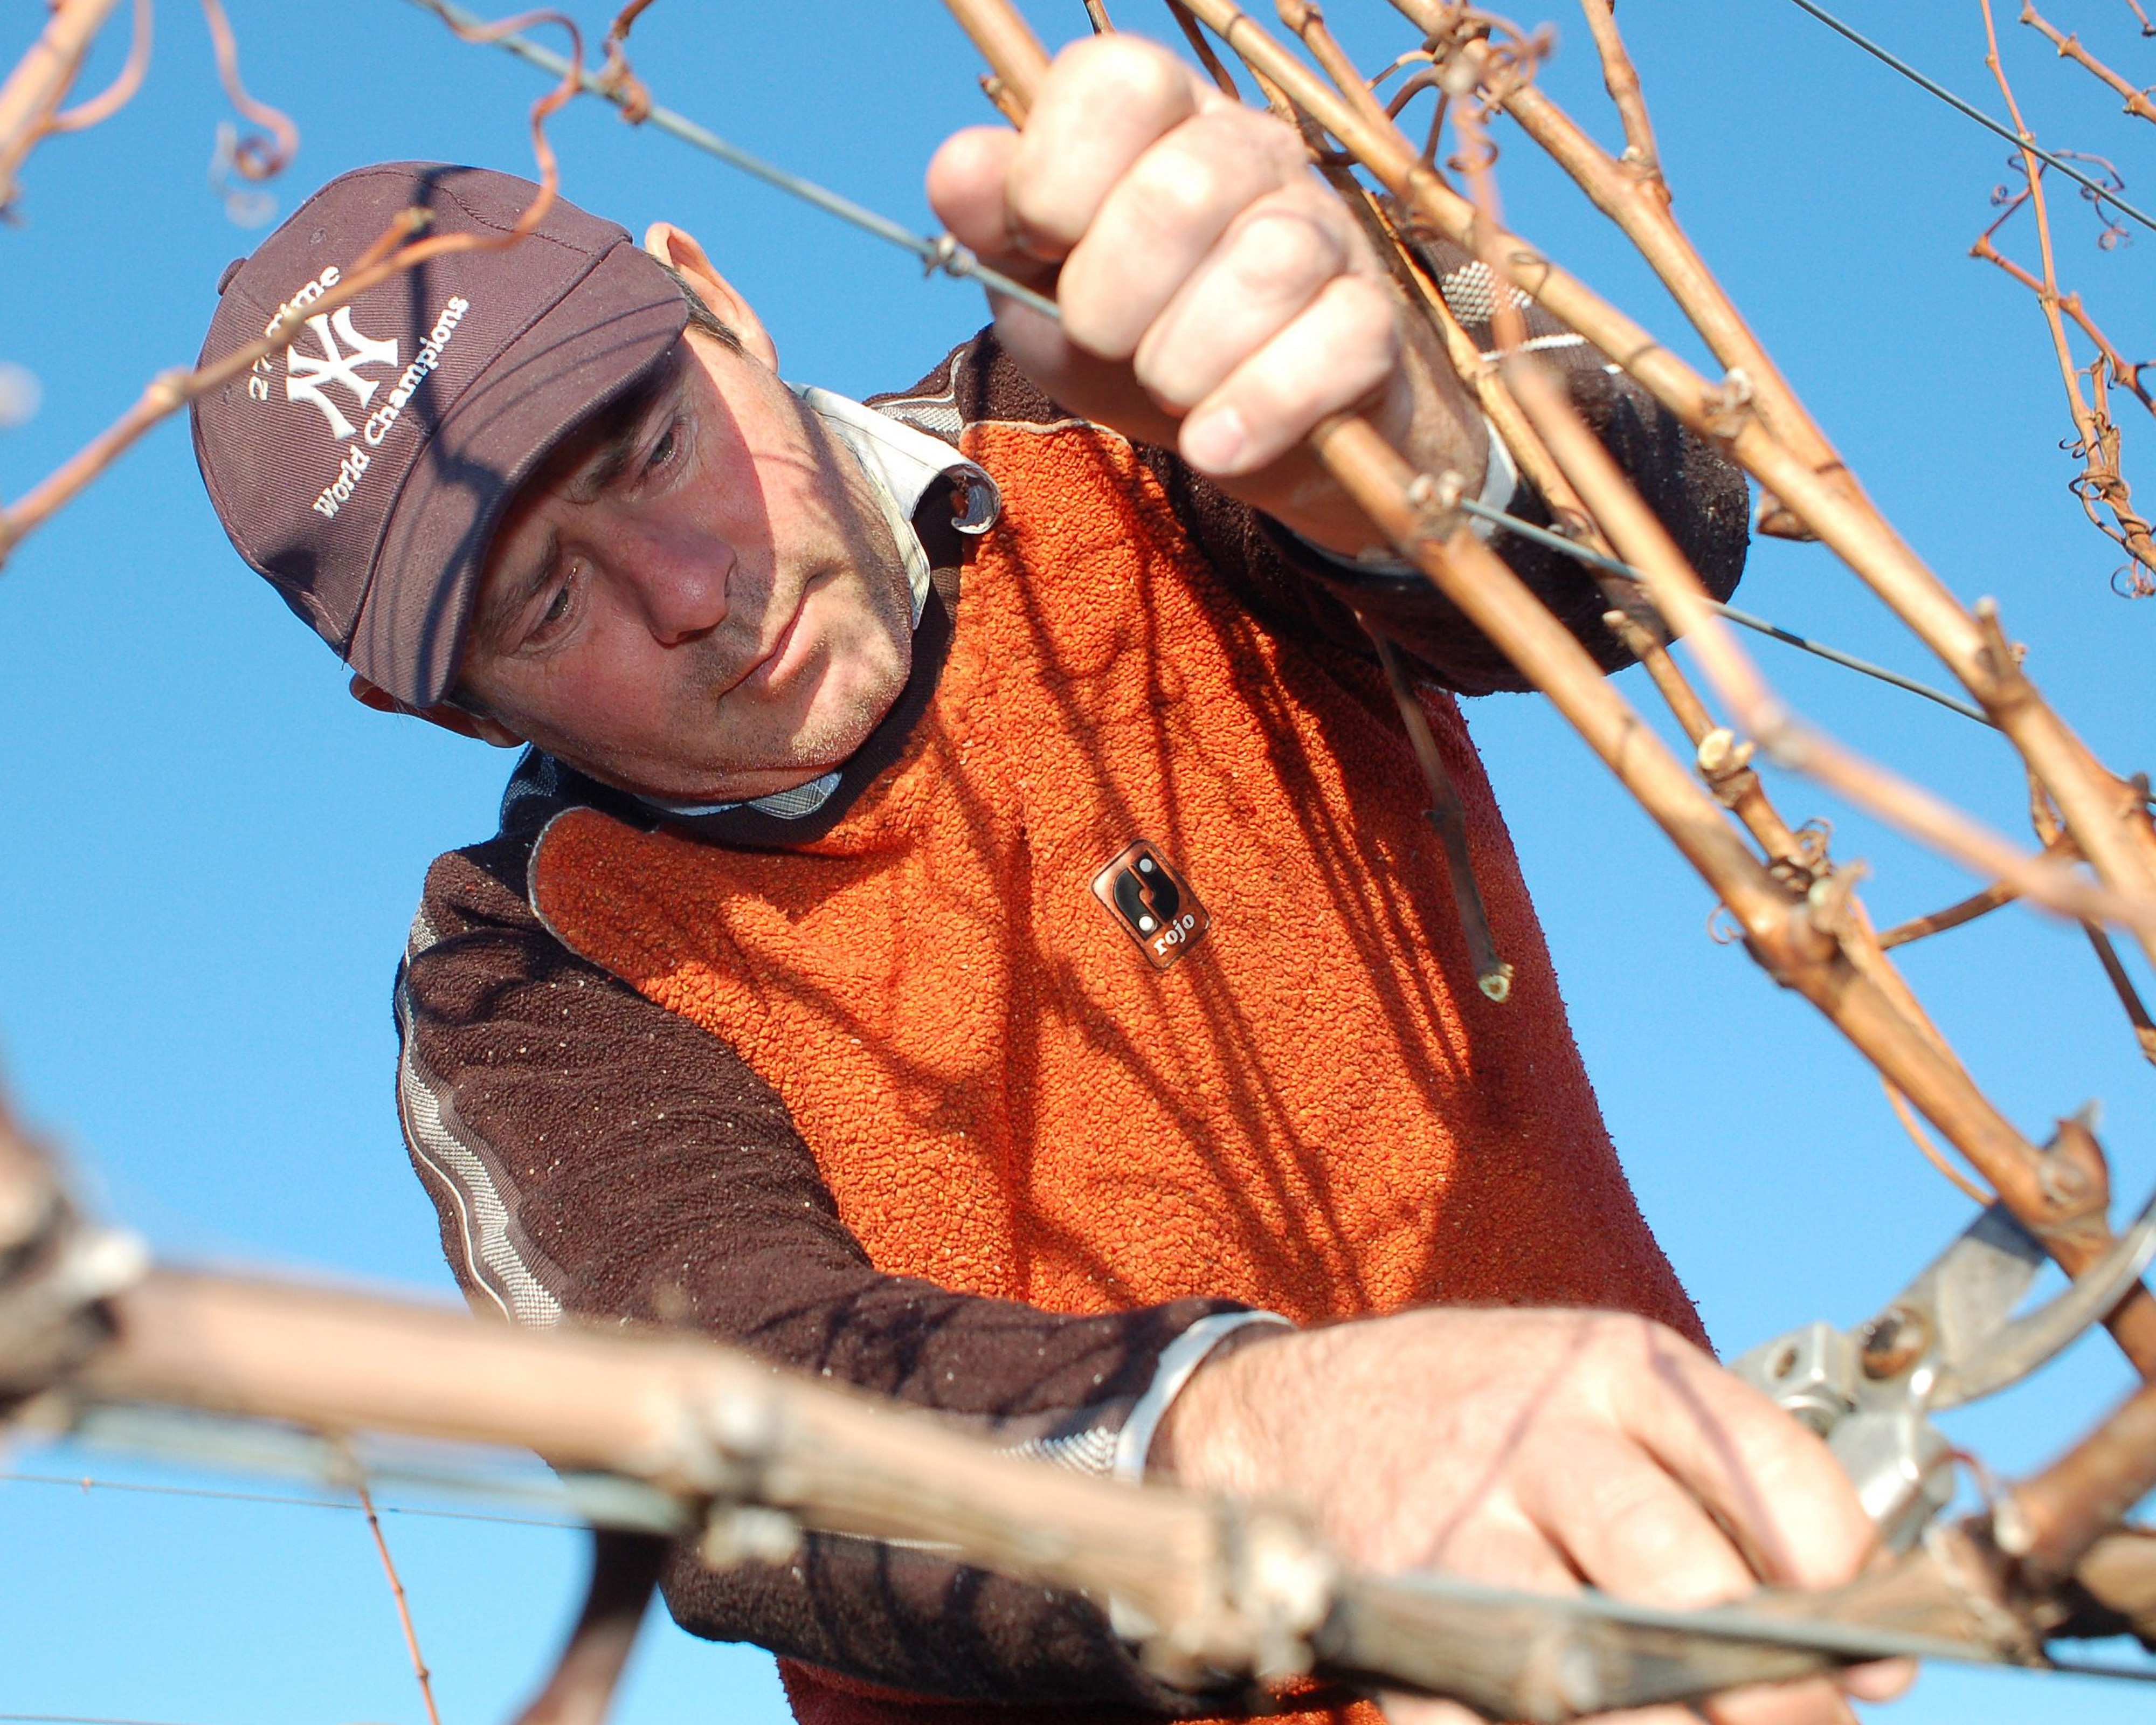 Steve Lubiana pruning at Granton Vineyard Tasmania 2010